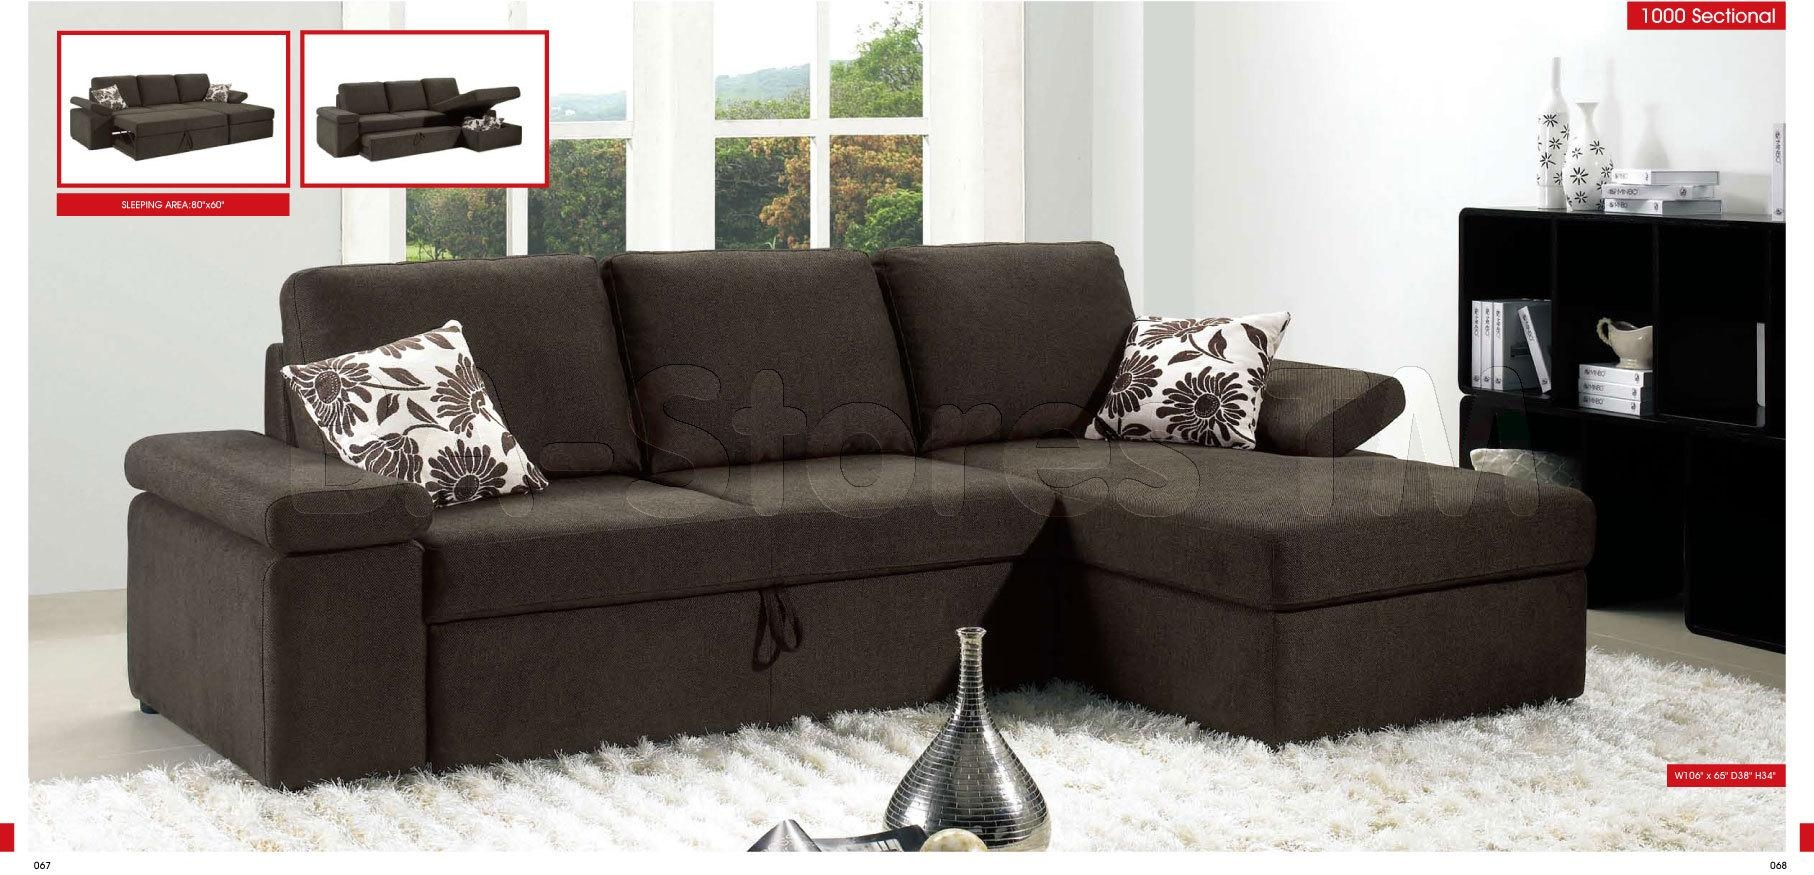 20 Best Collection Of City Sofa Beds